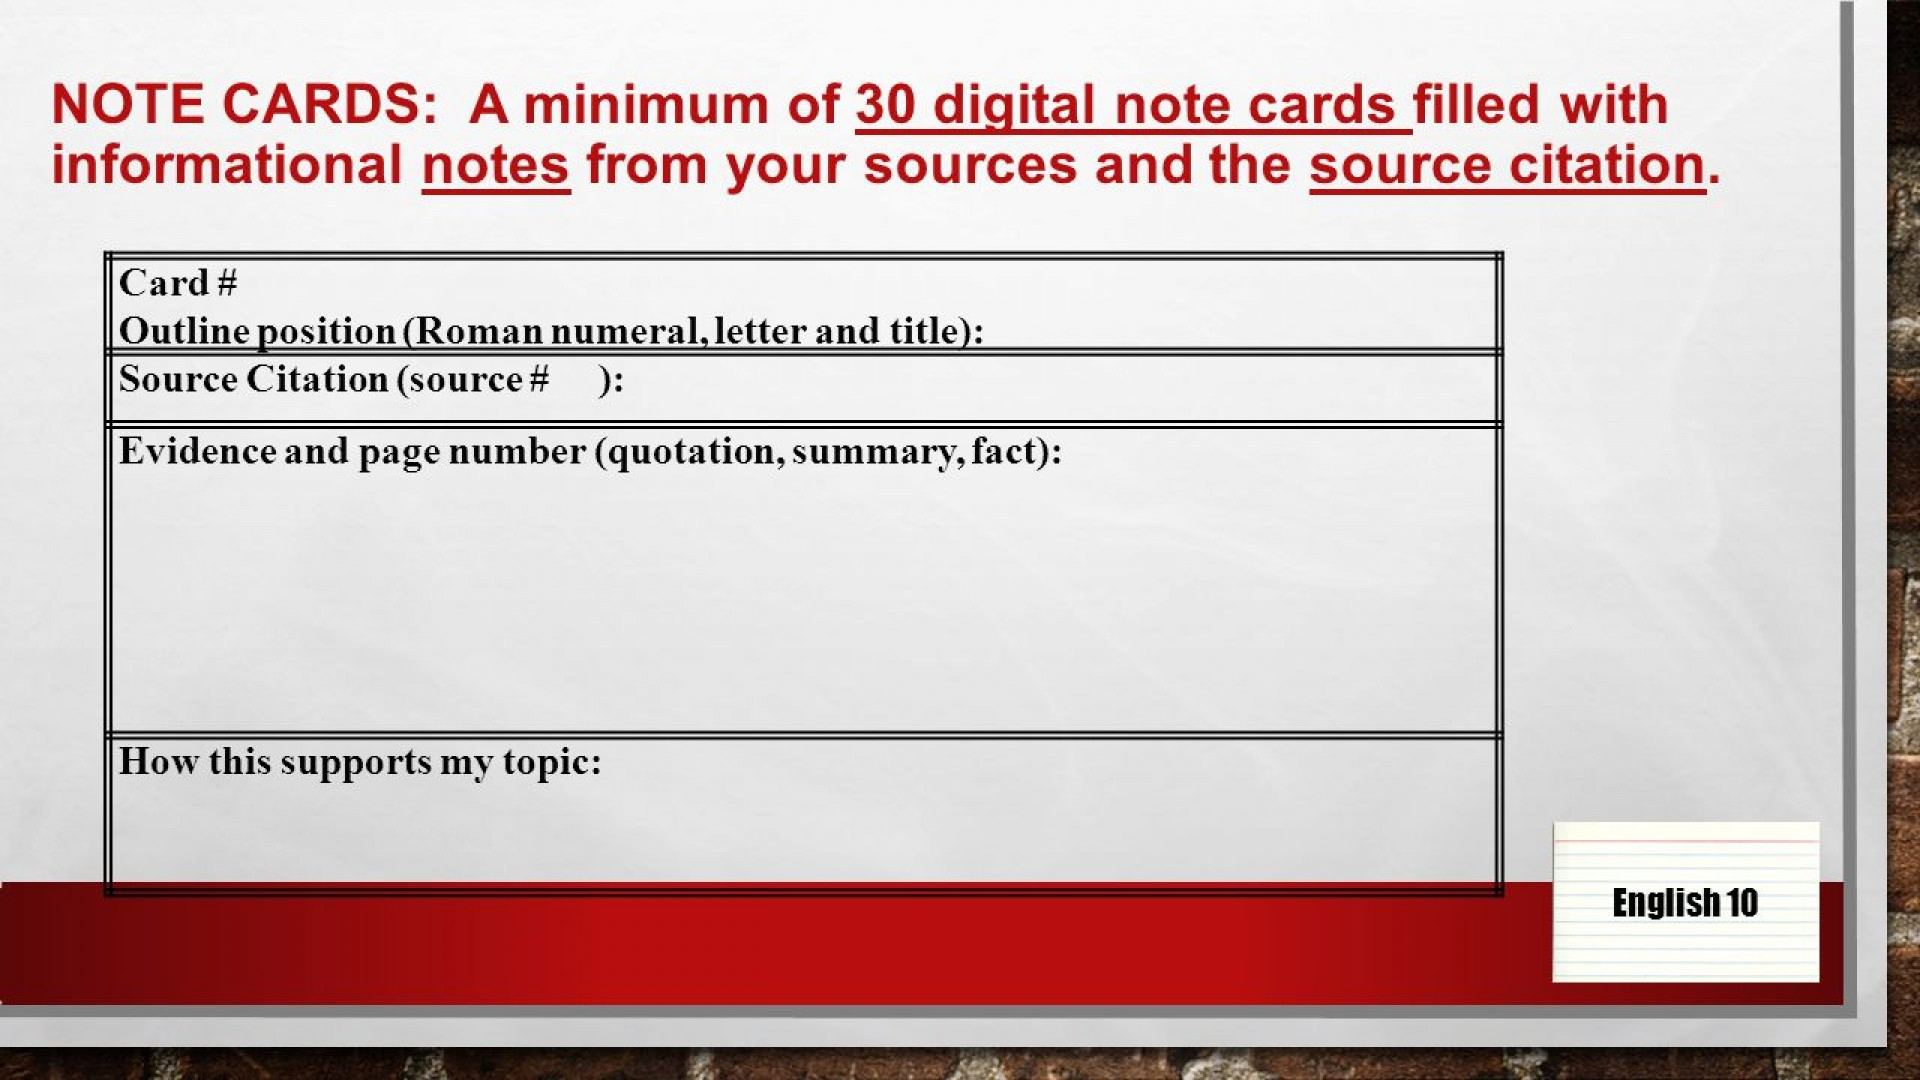 007 Research Paper Note Cards Slide 4 Stupendous Mla Format Examples 1920